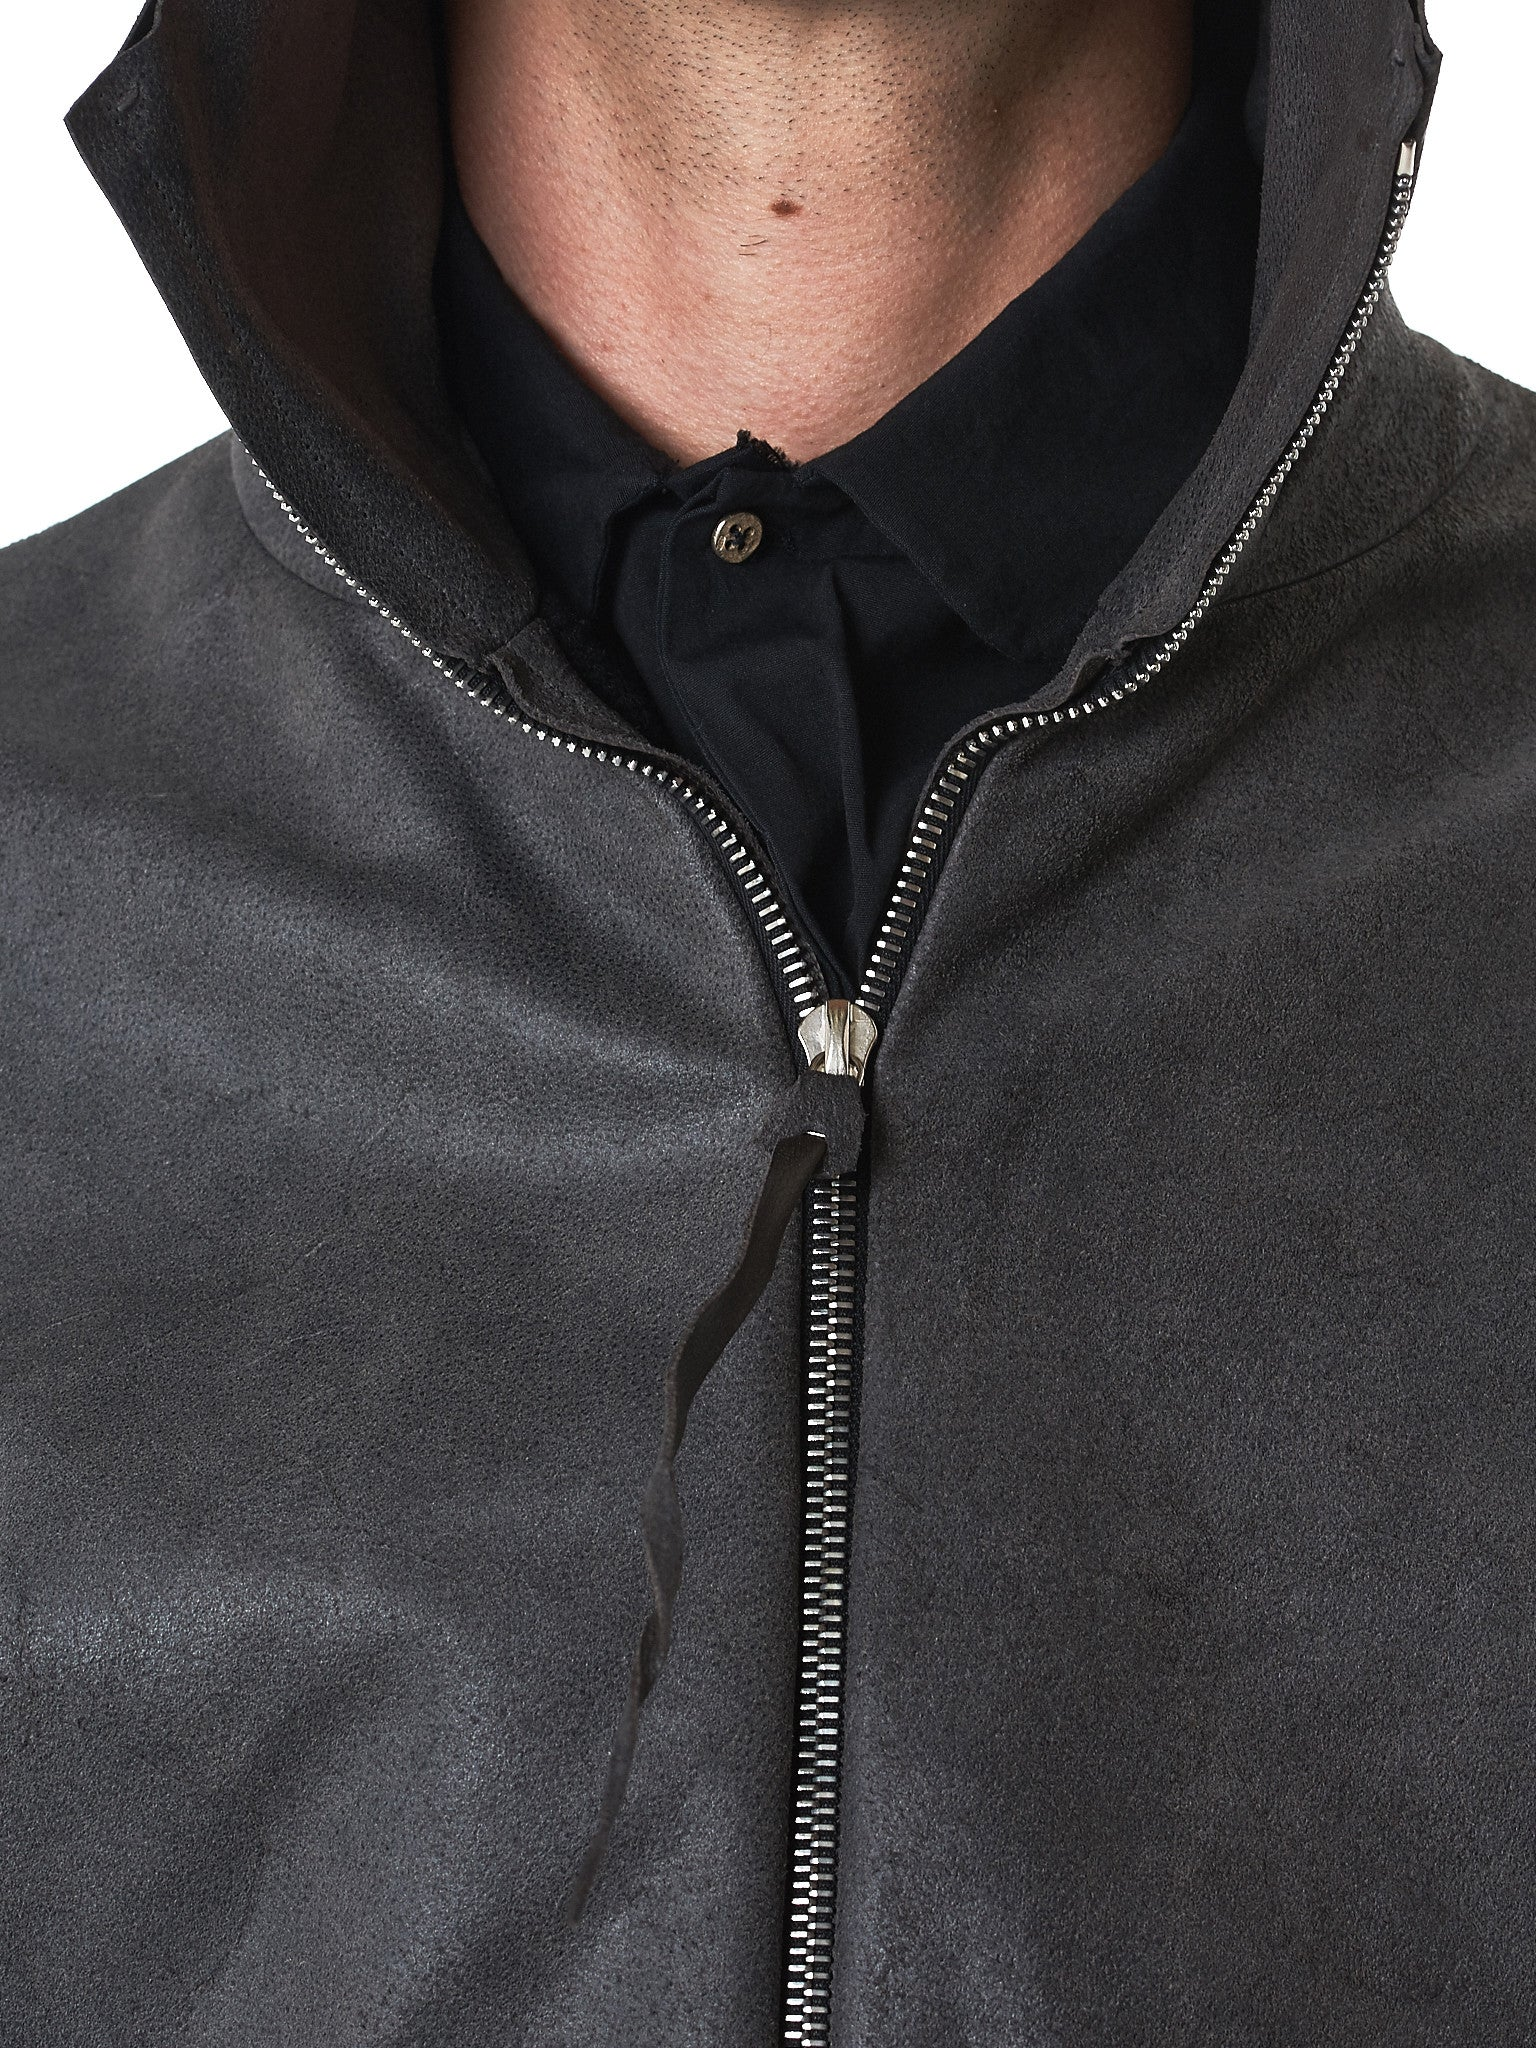 MA+/Hlorenzo- waxed leather jacket detail